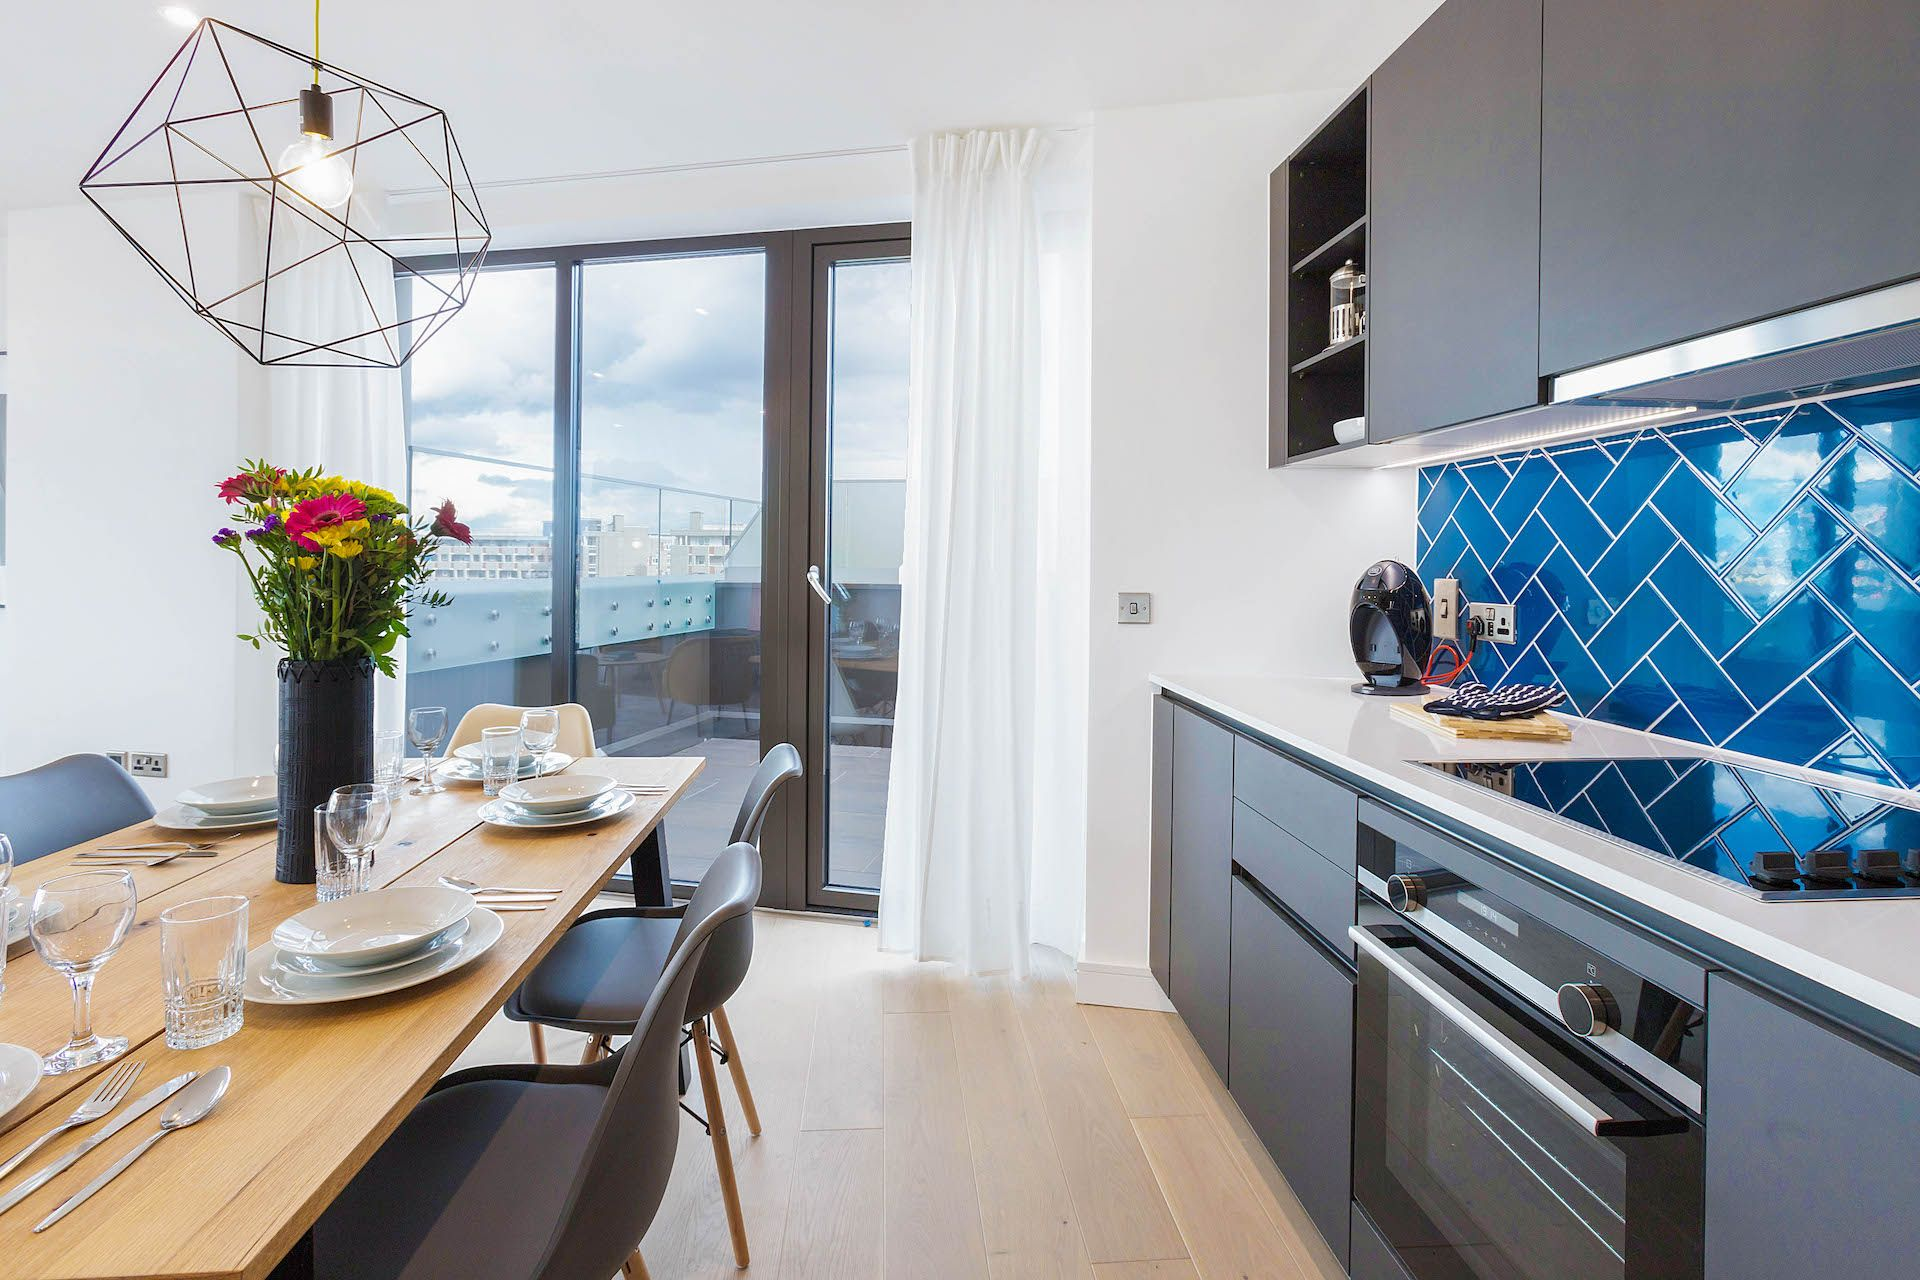 3 Bedroom apartment to rent in London SHO-RO-0009